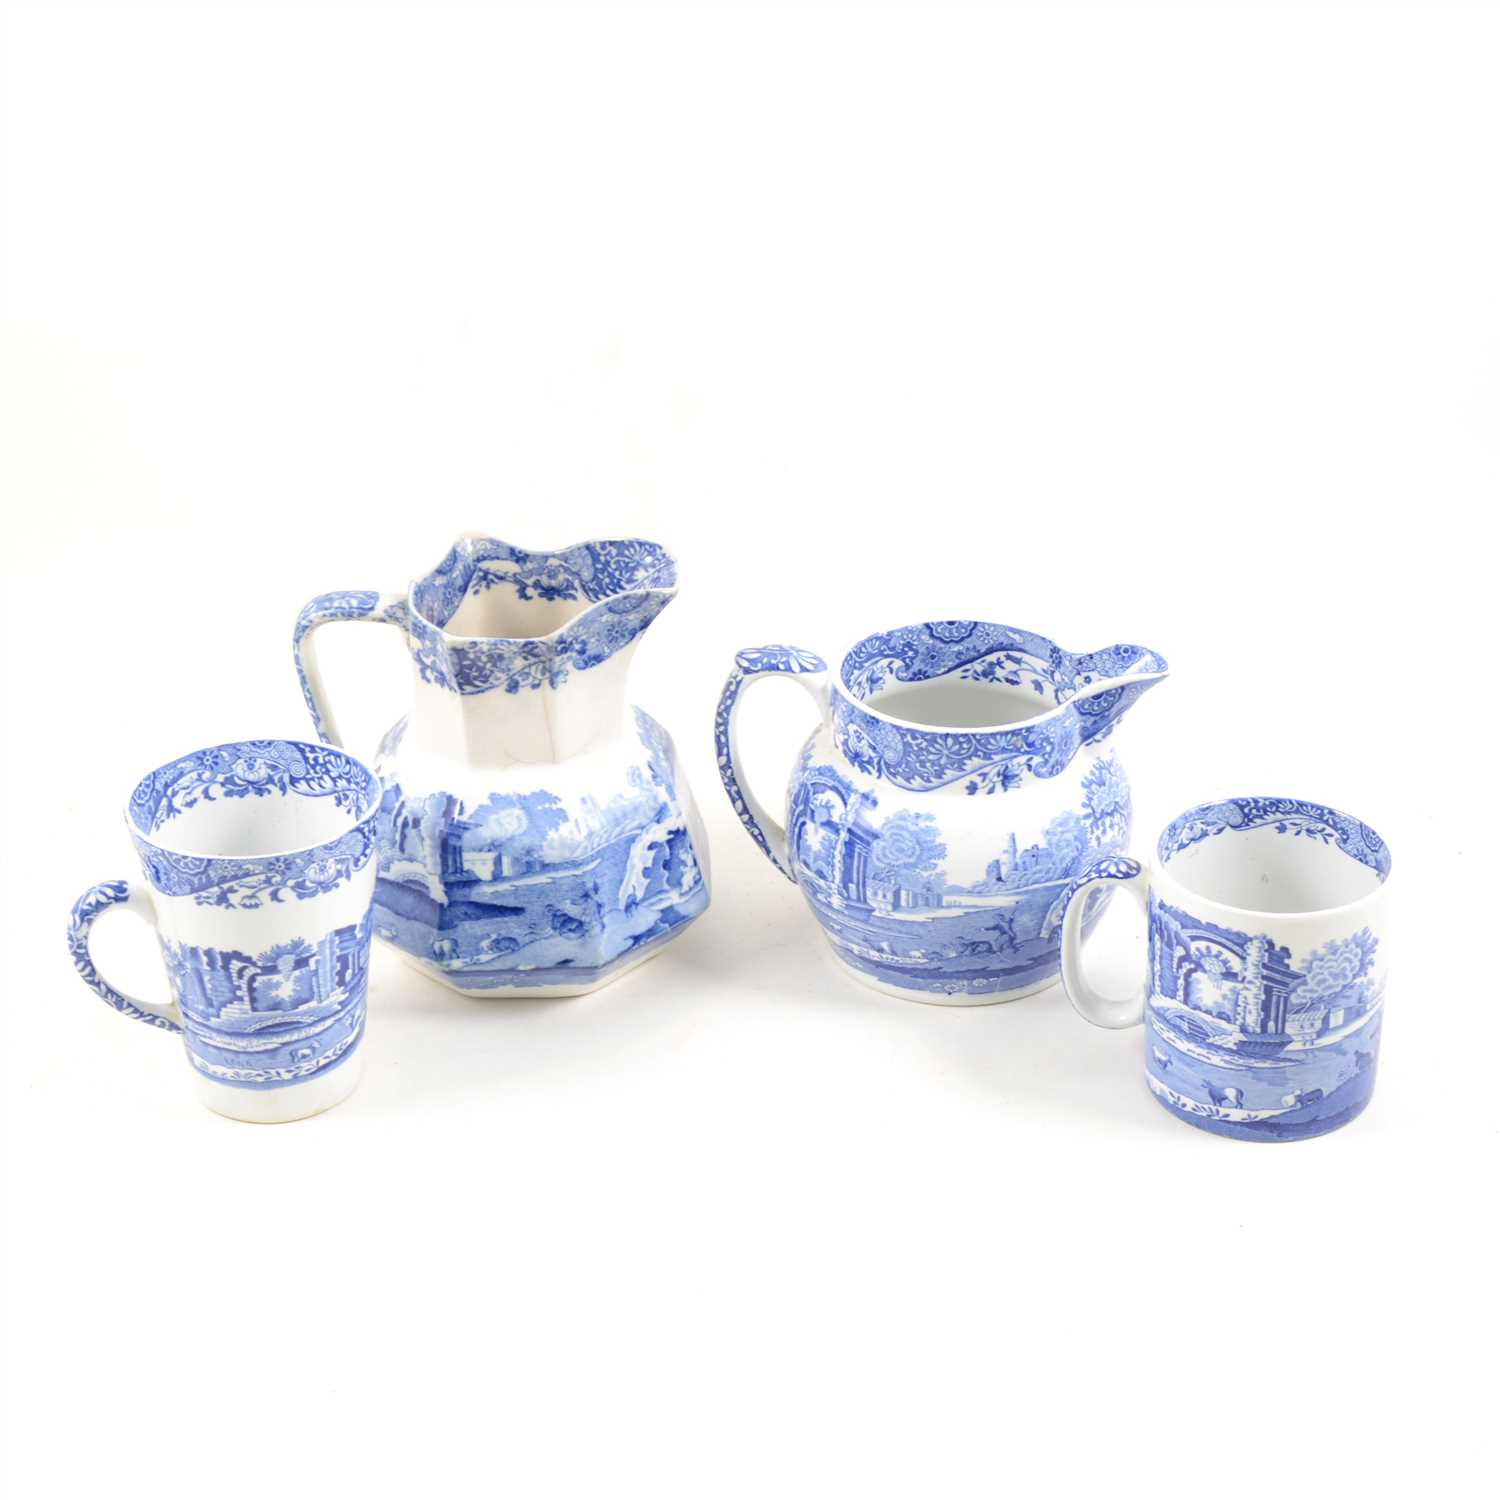 "Lot 91-A quantity of Spode blue and white transfer printed ware in the ""Italian"" design."